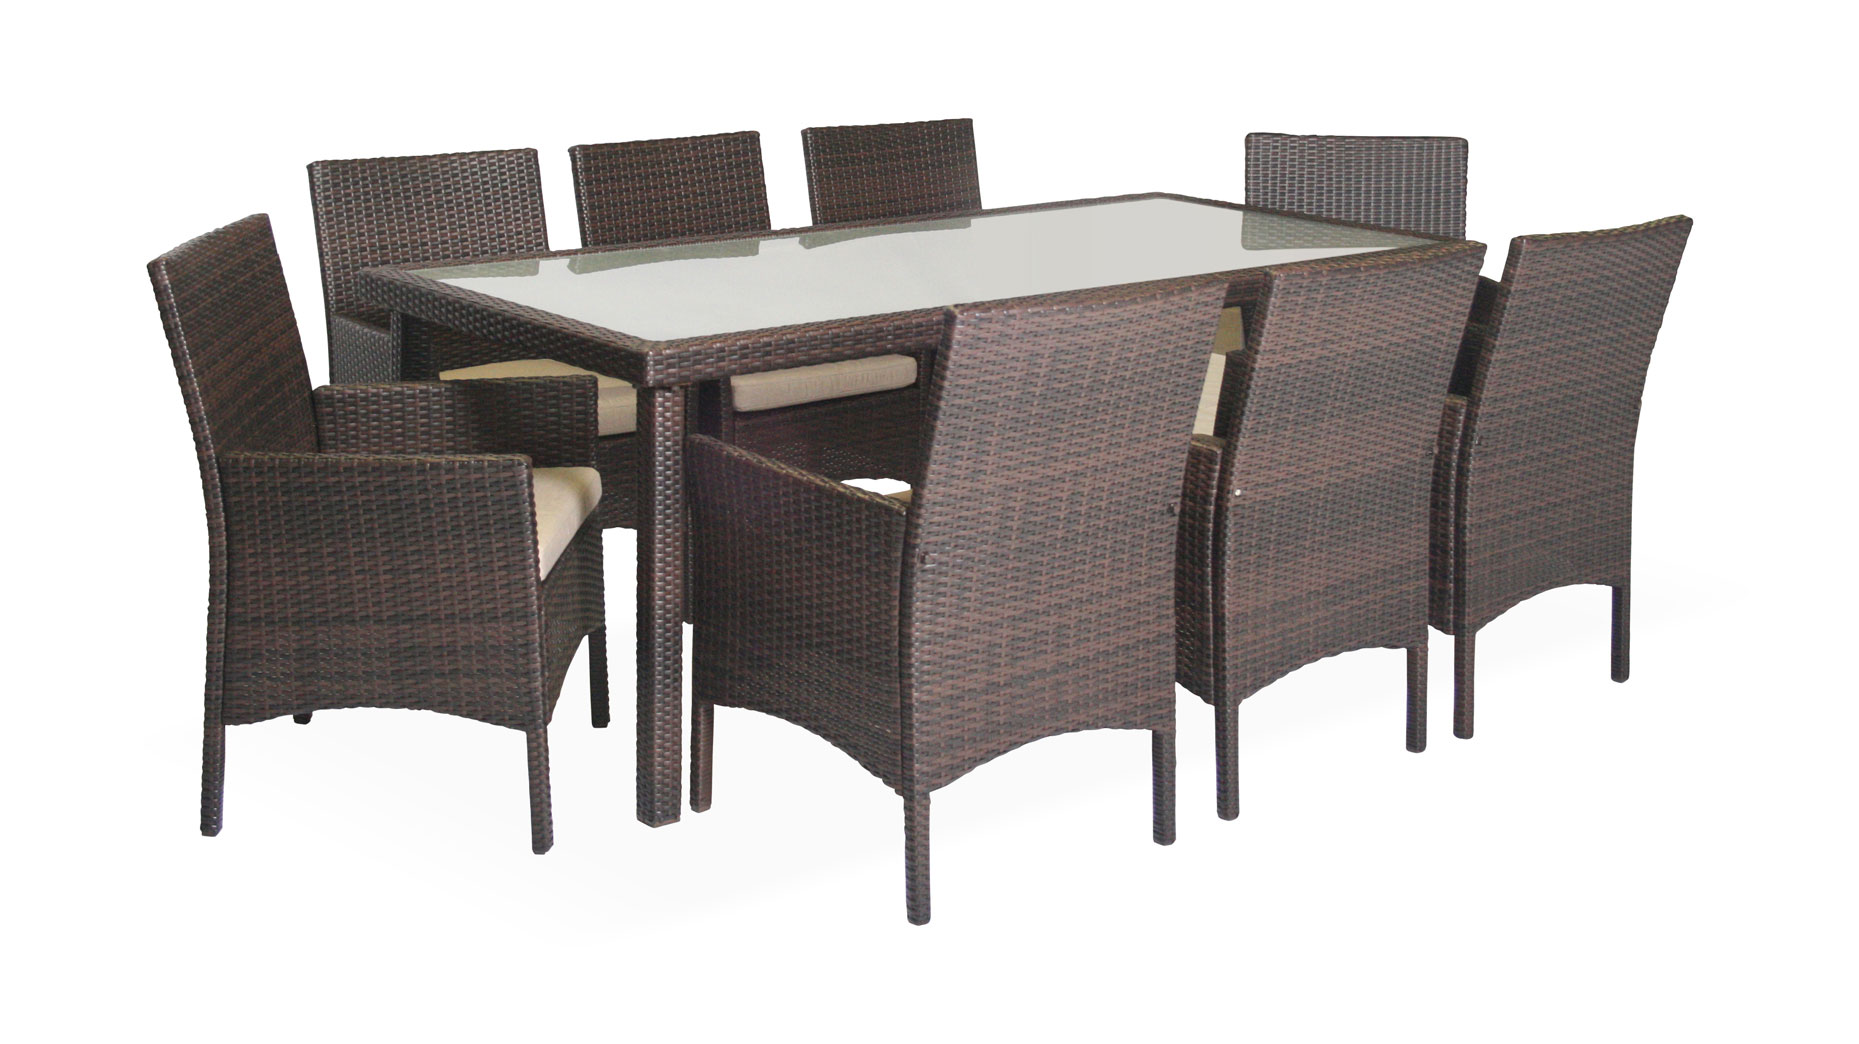 Azur 8 seater Dining set brown